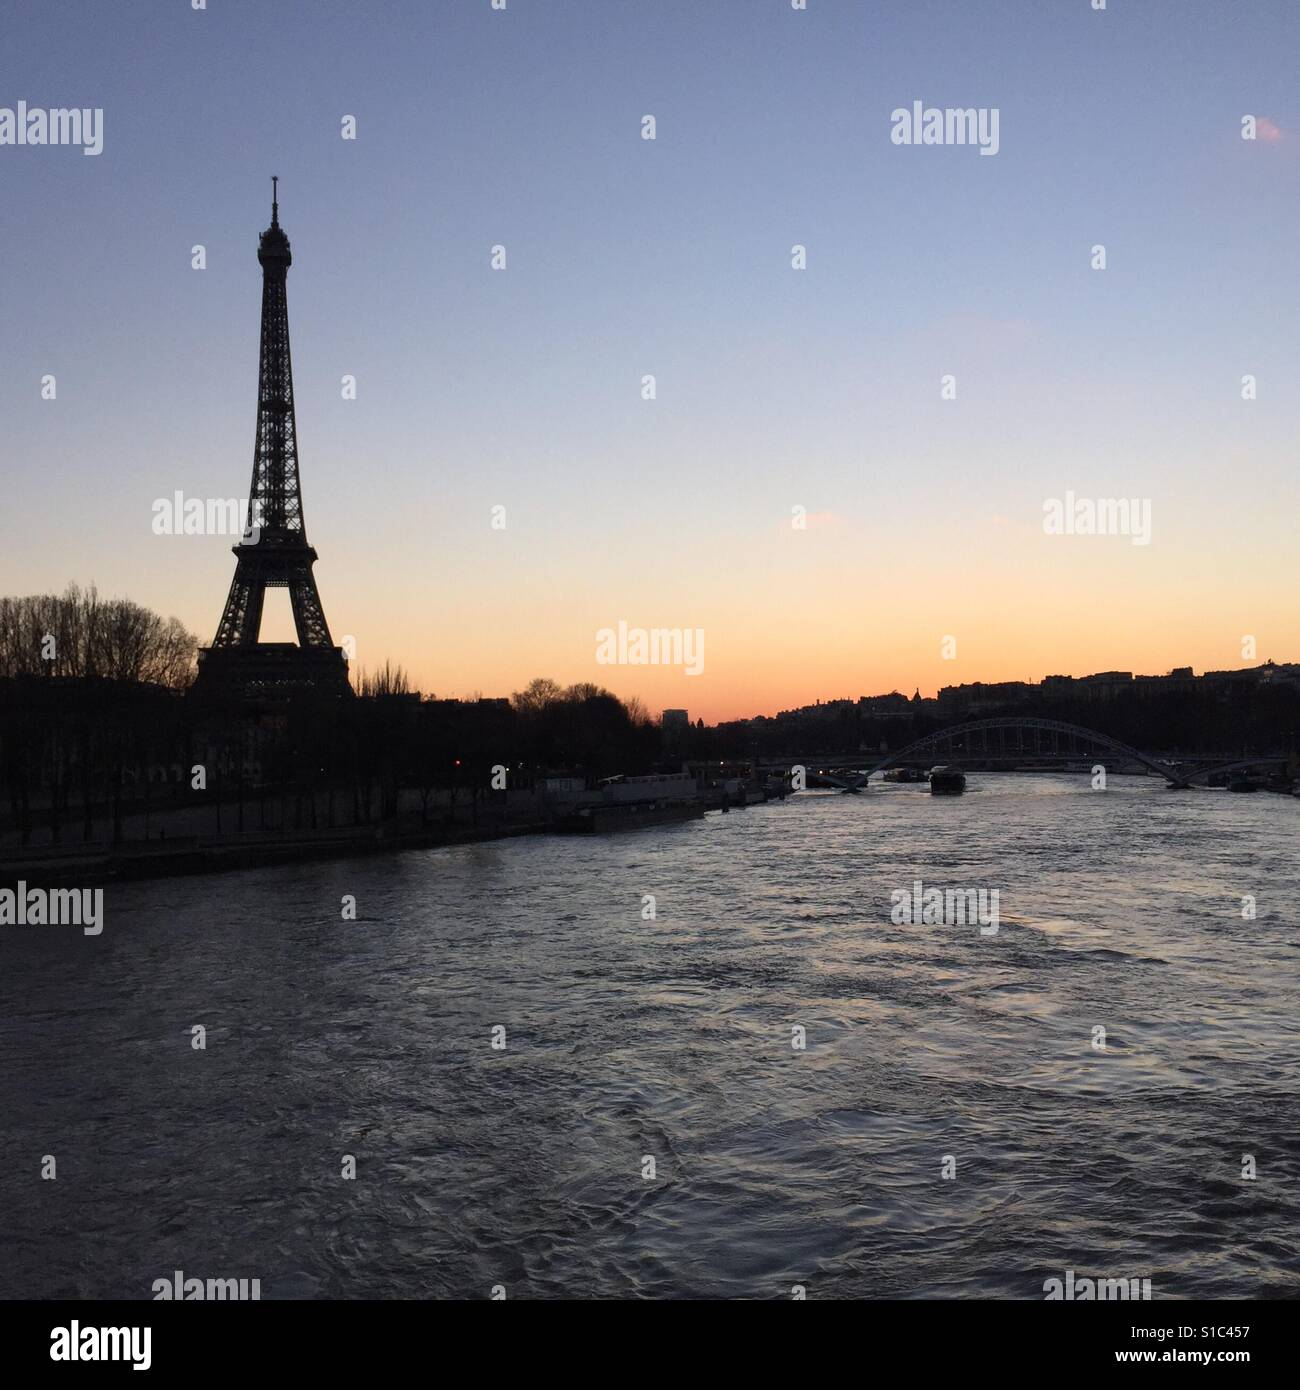 Eiffel Tower in Paris on a winter sunset from a bridge crossing river Seine - Stock Image